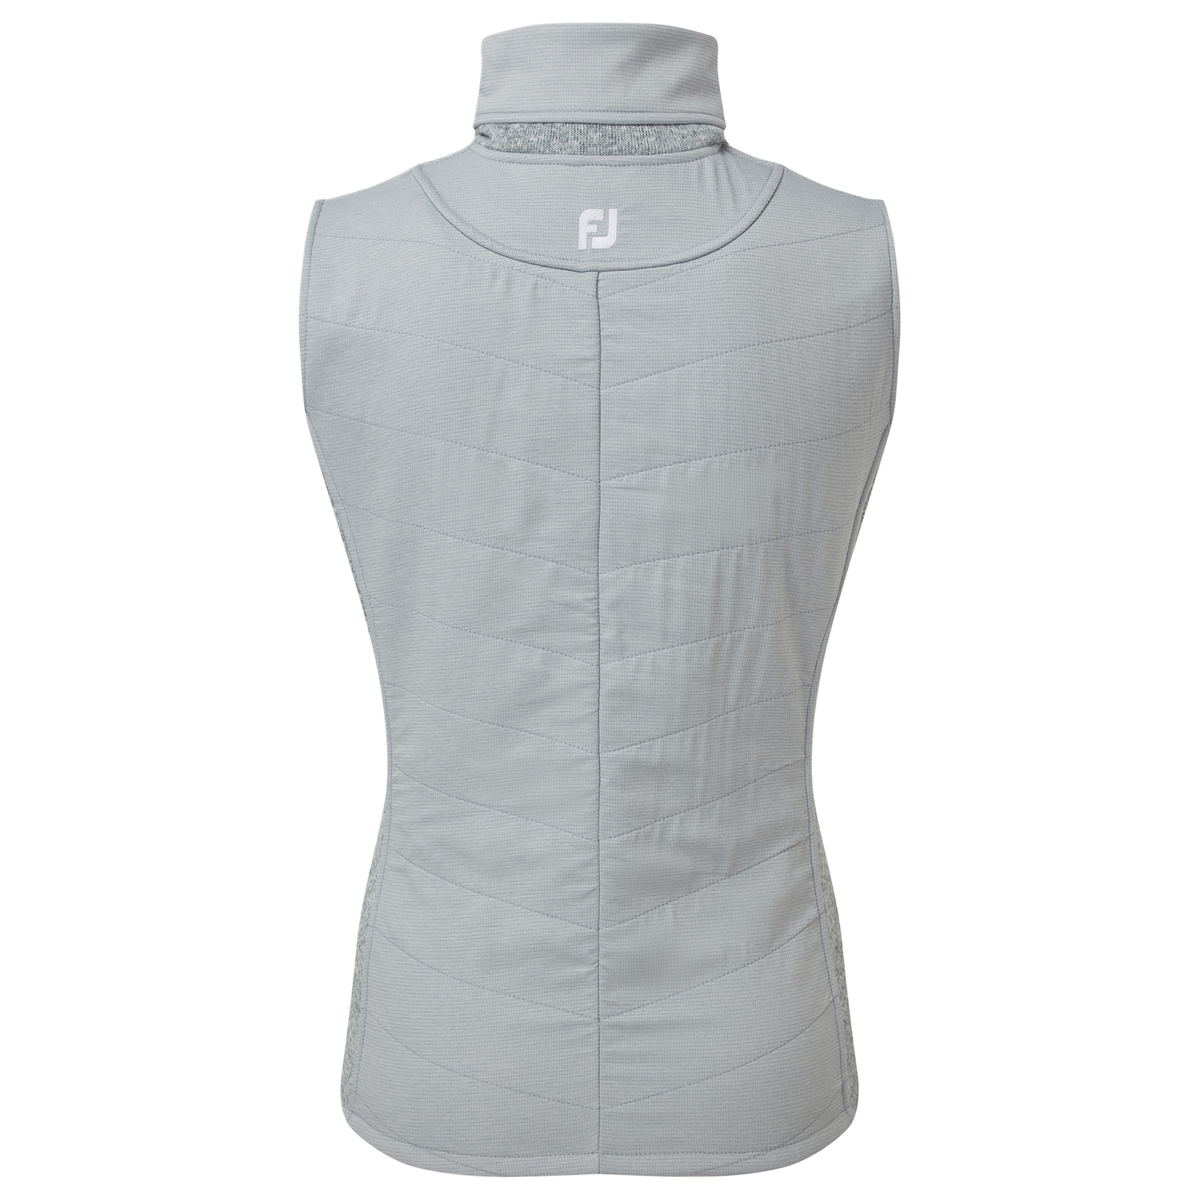 FJ Thermal Quilted Vest Womens